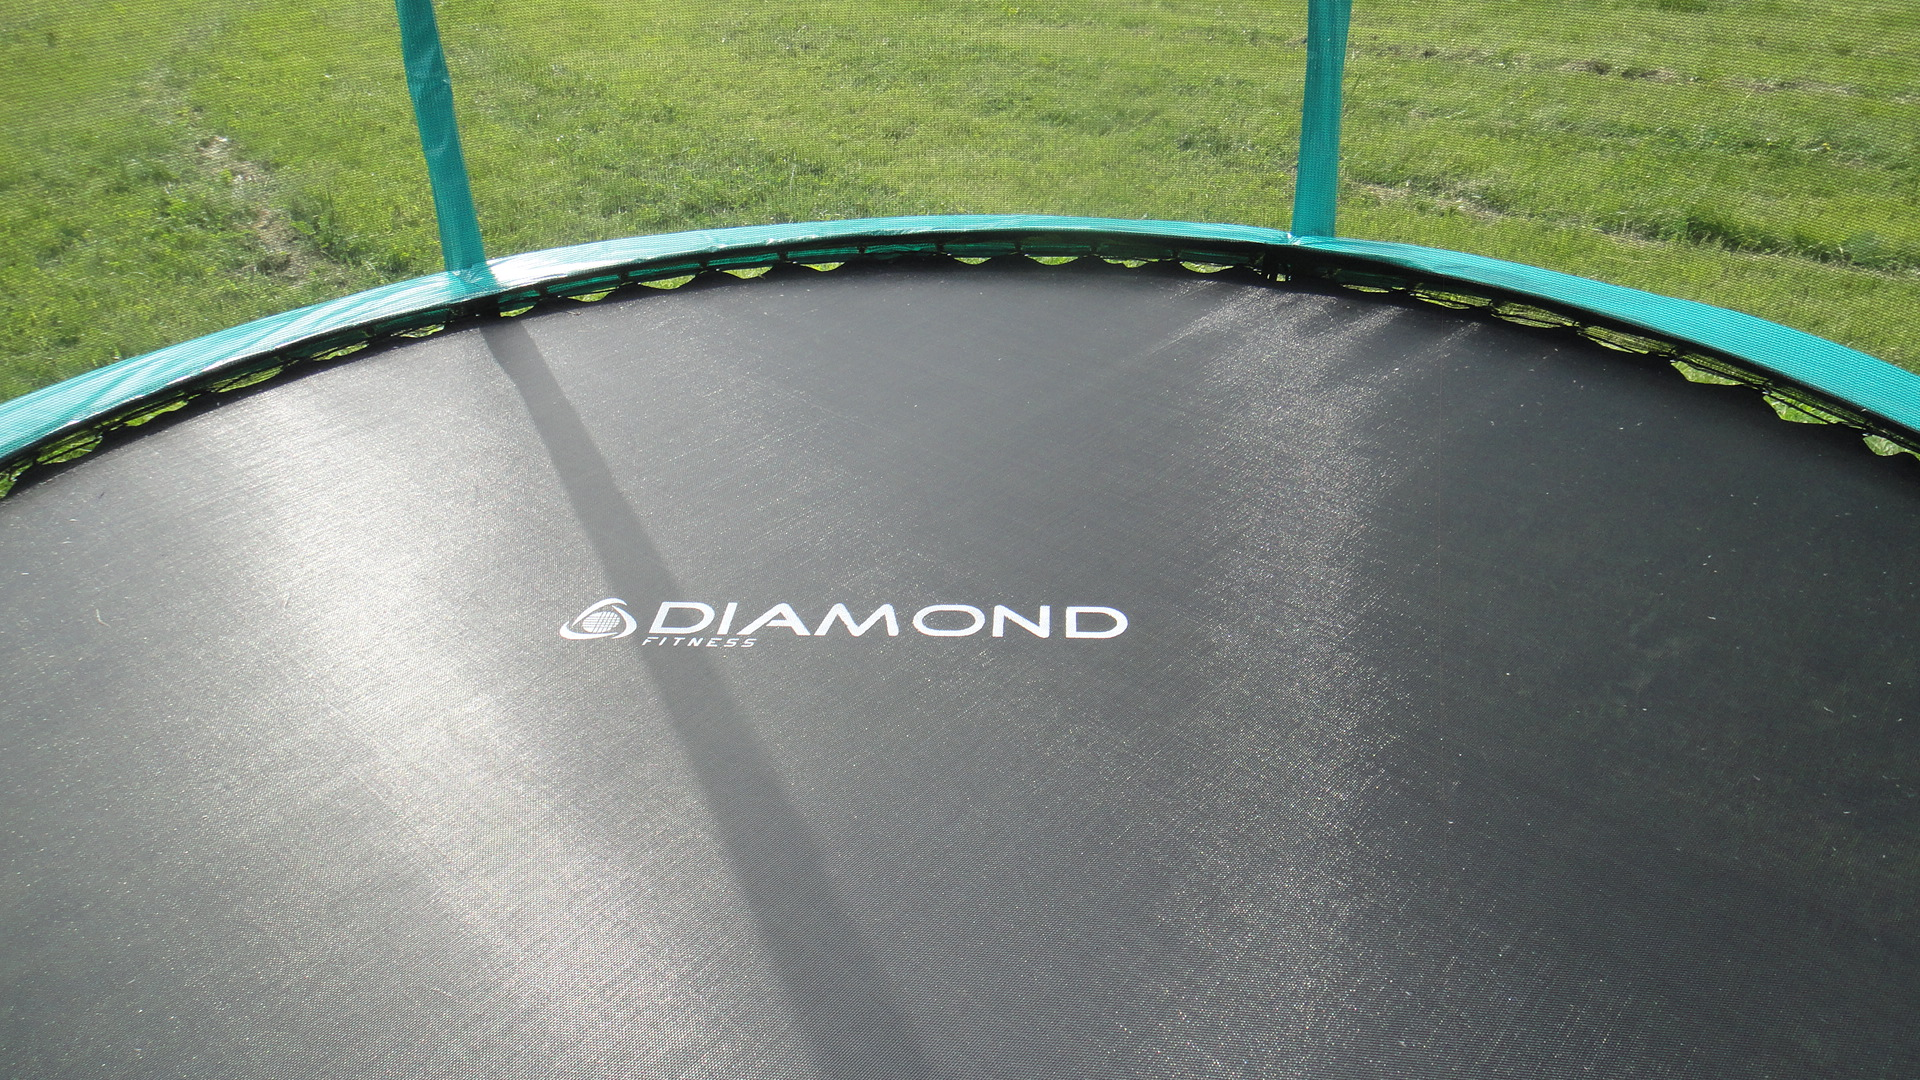 Батут Diamond Fitness Black Edition 8 ft. (244 см) комплект